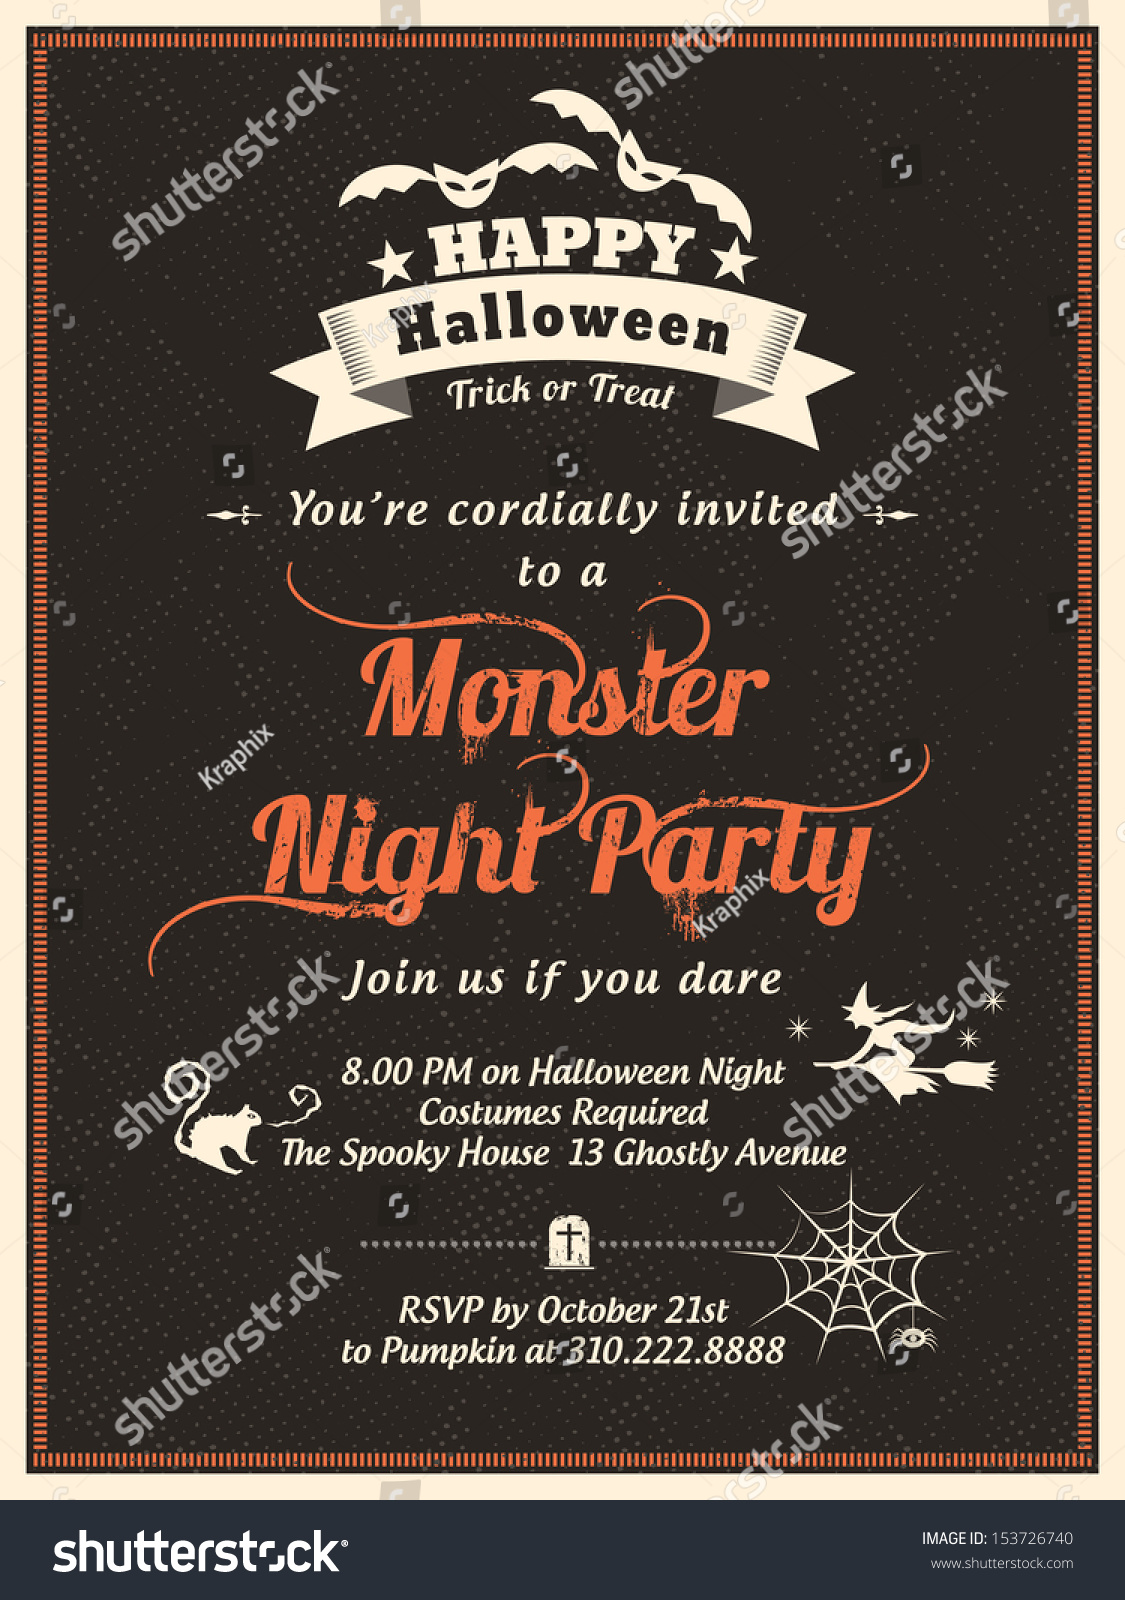 Adult Party Invitation as great invitations template